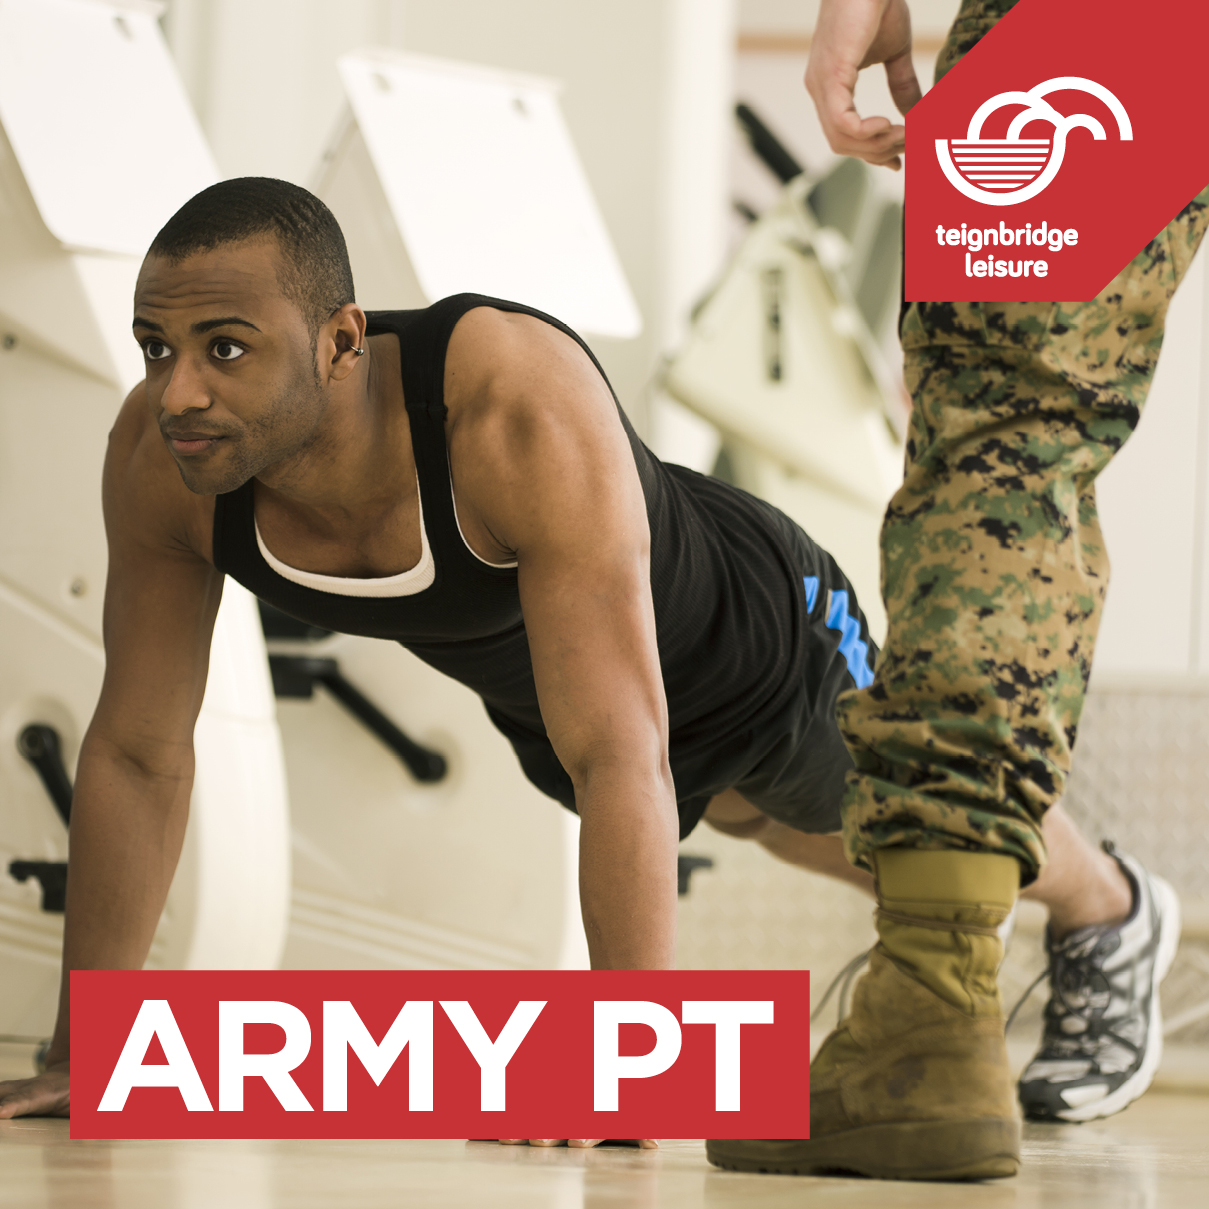 Army PT